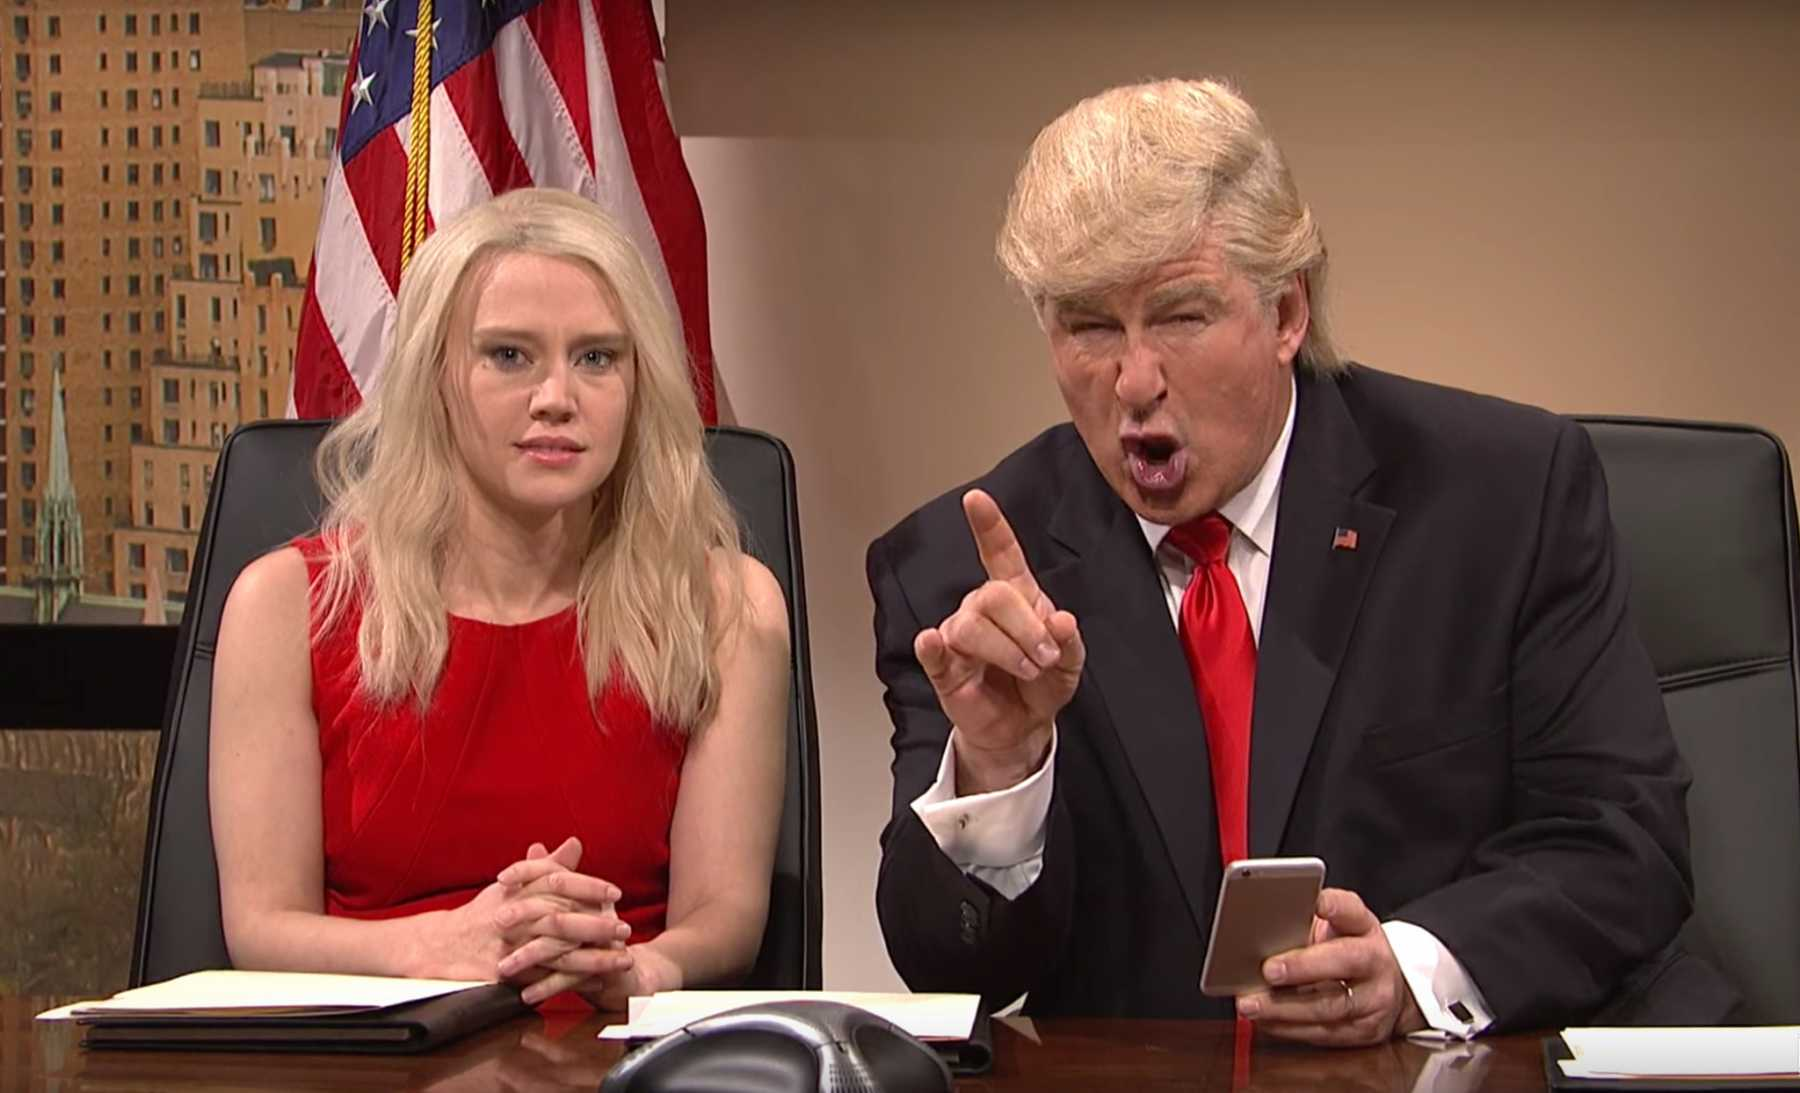 Alec Baldwin Says He Will Stop Mocking Trump On SNL On One Condition | Alec Baldwin